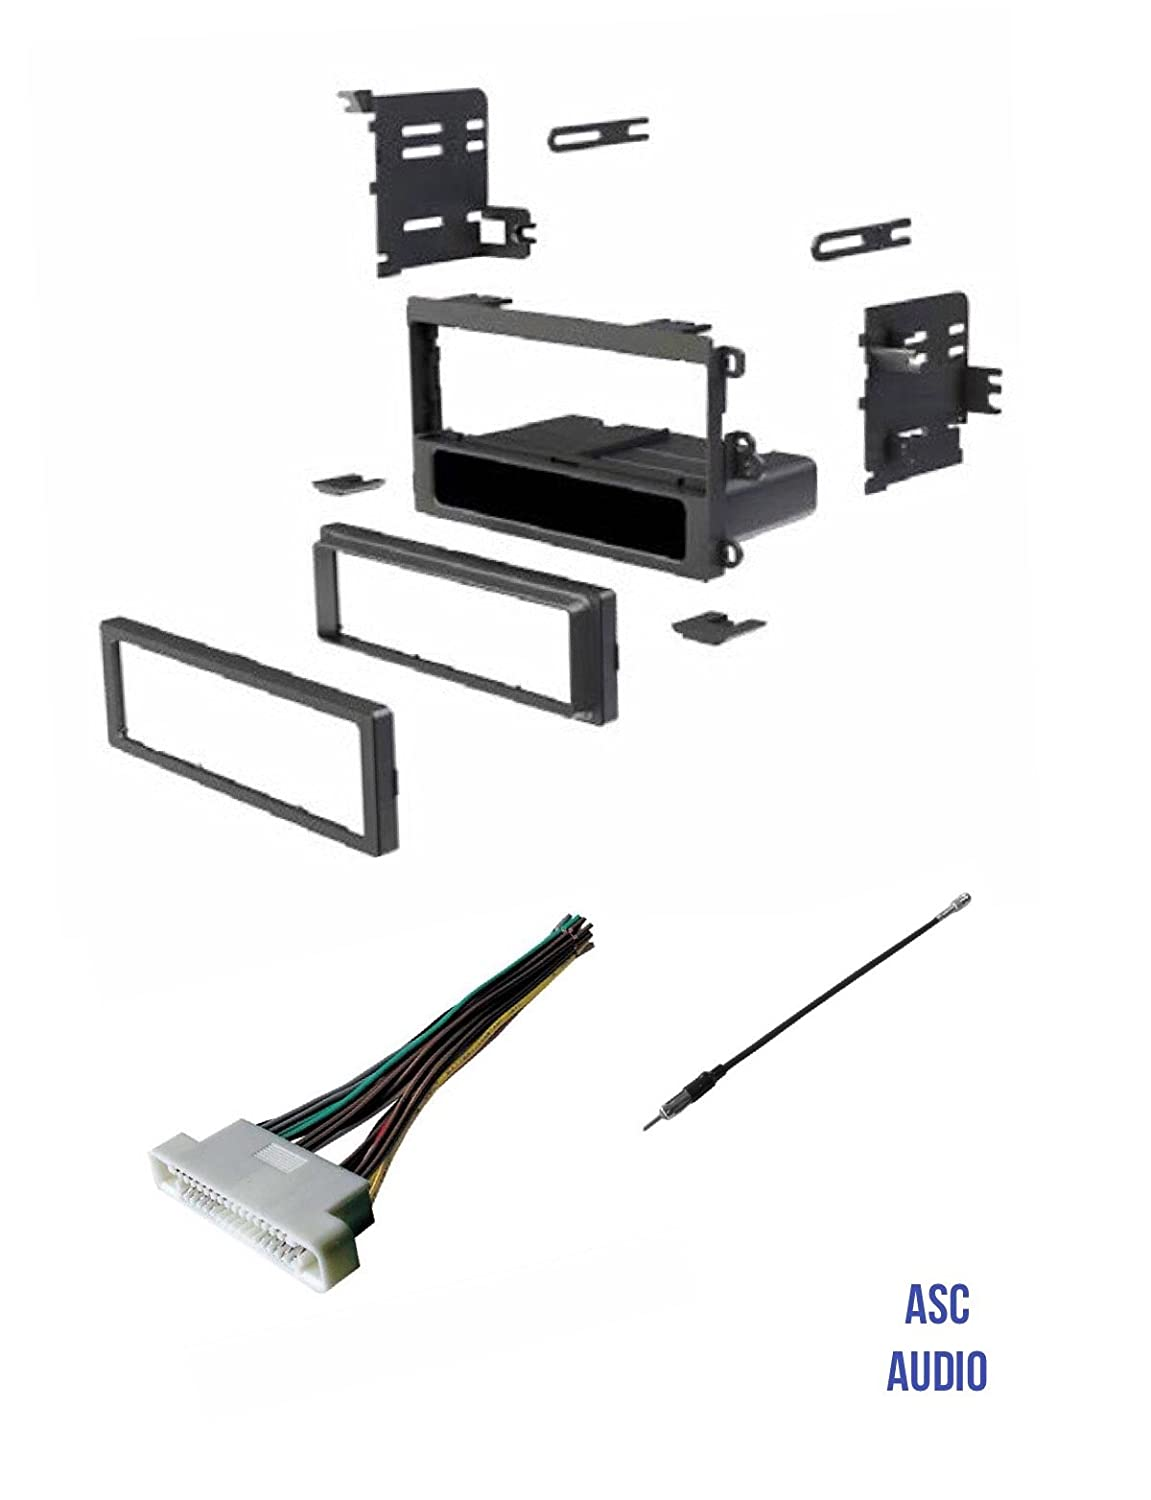 Asc Car Stereo Dash Kit Wire Harness And Antenna Adapter To Install A Single Din Aftermarket Radio For Some 00 06 Buick Lesabre 01 03 Oldsmobile Aurora